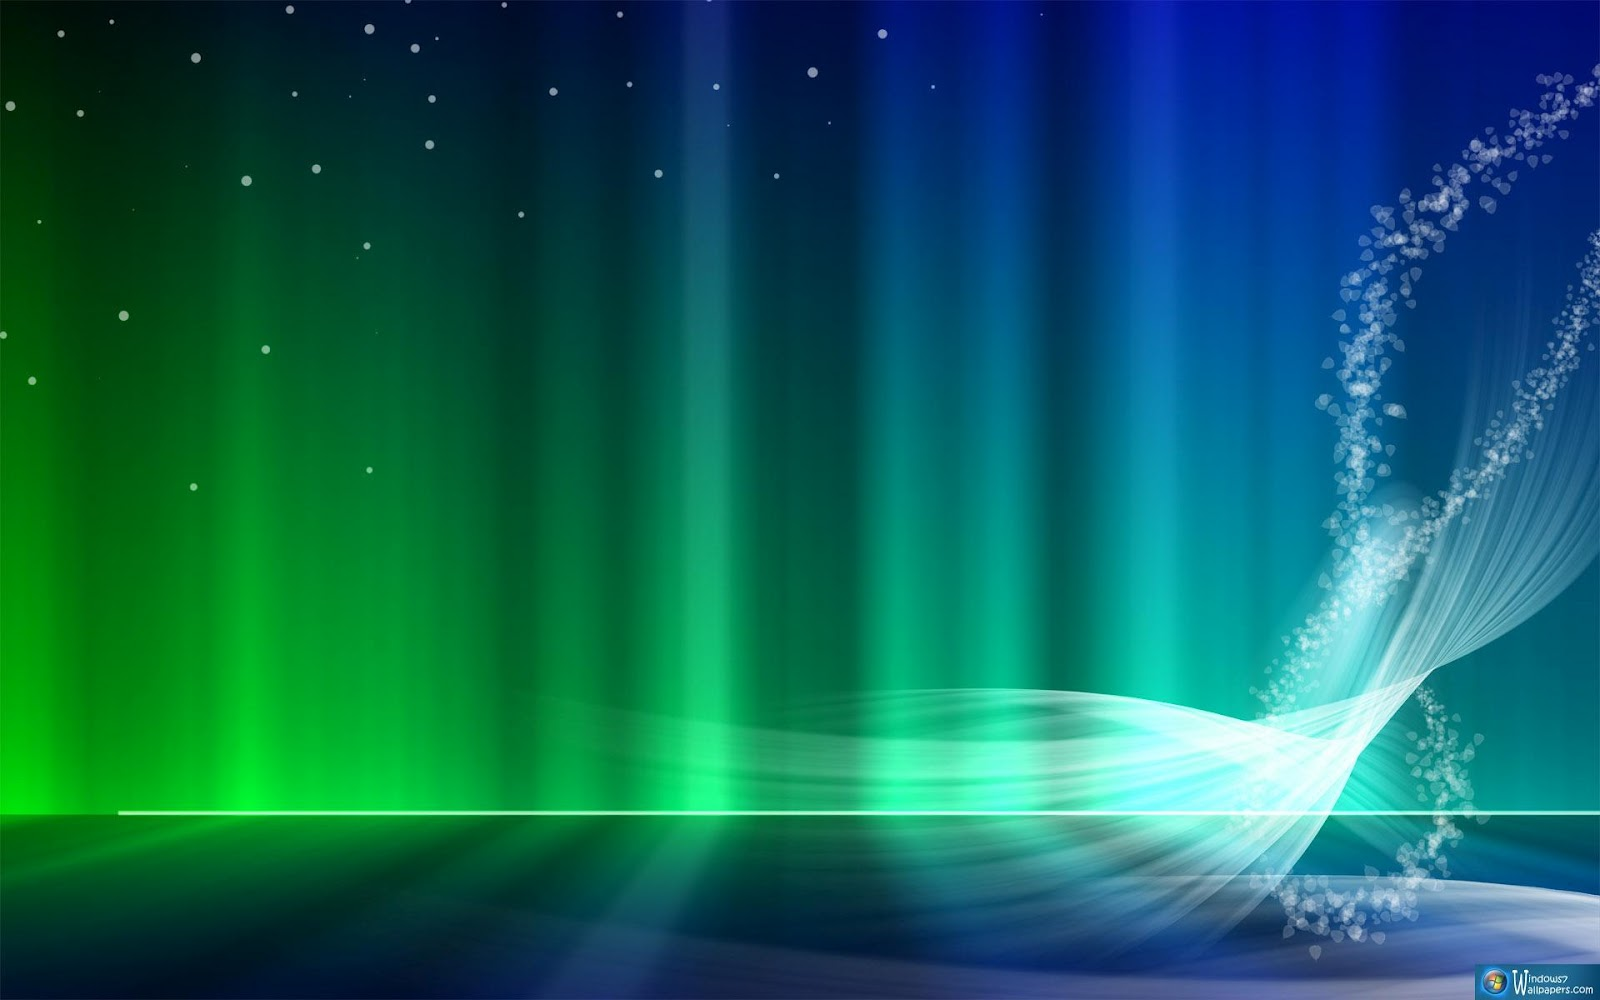 windows 7 wallpapers hd latest hd wallpapers will be found on this 1600x1000